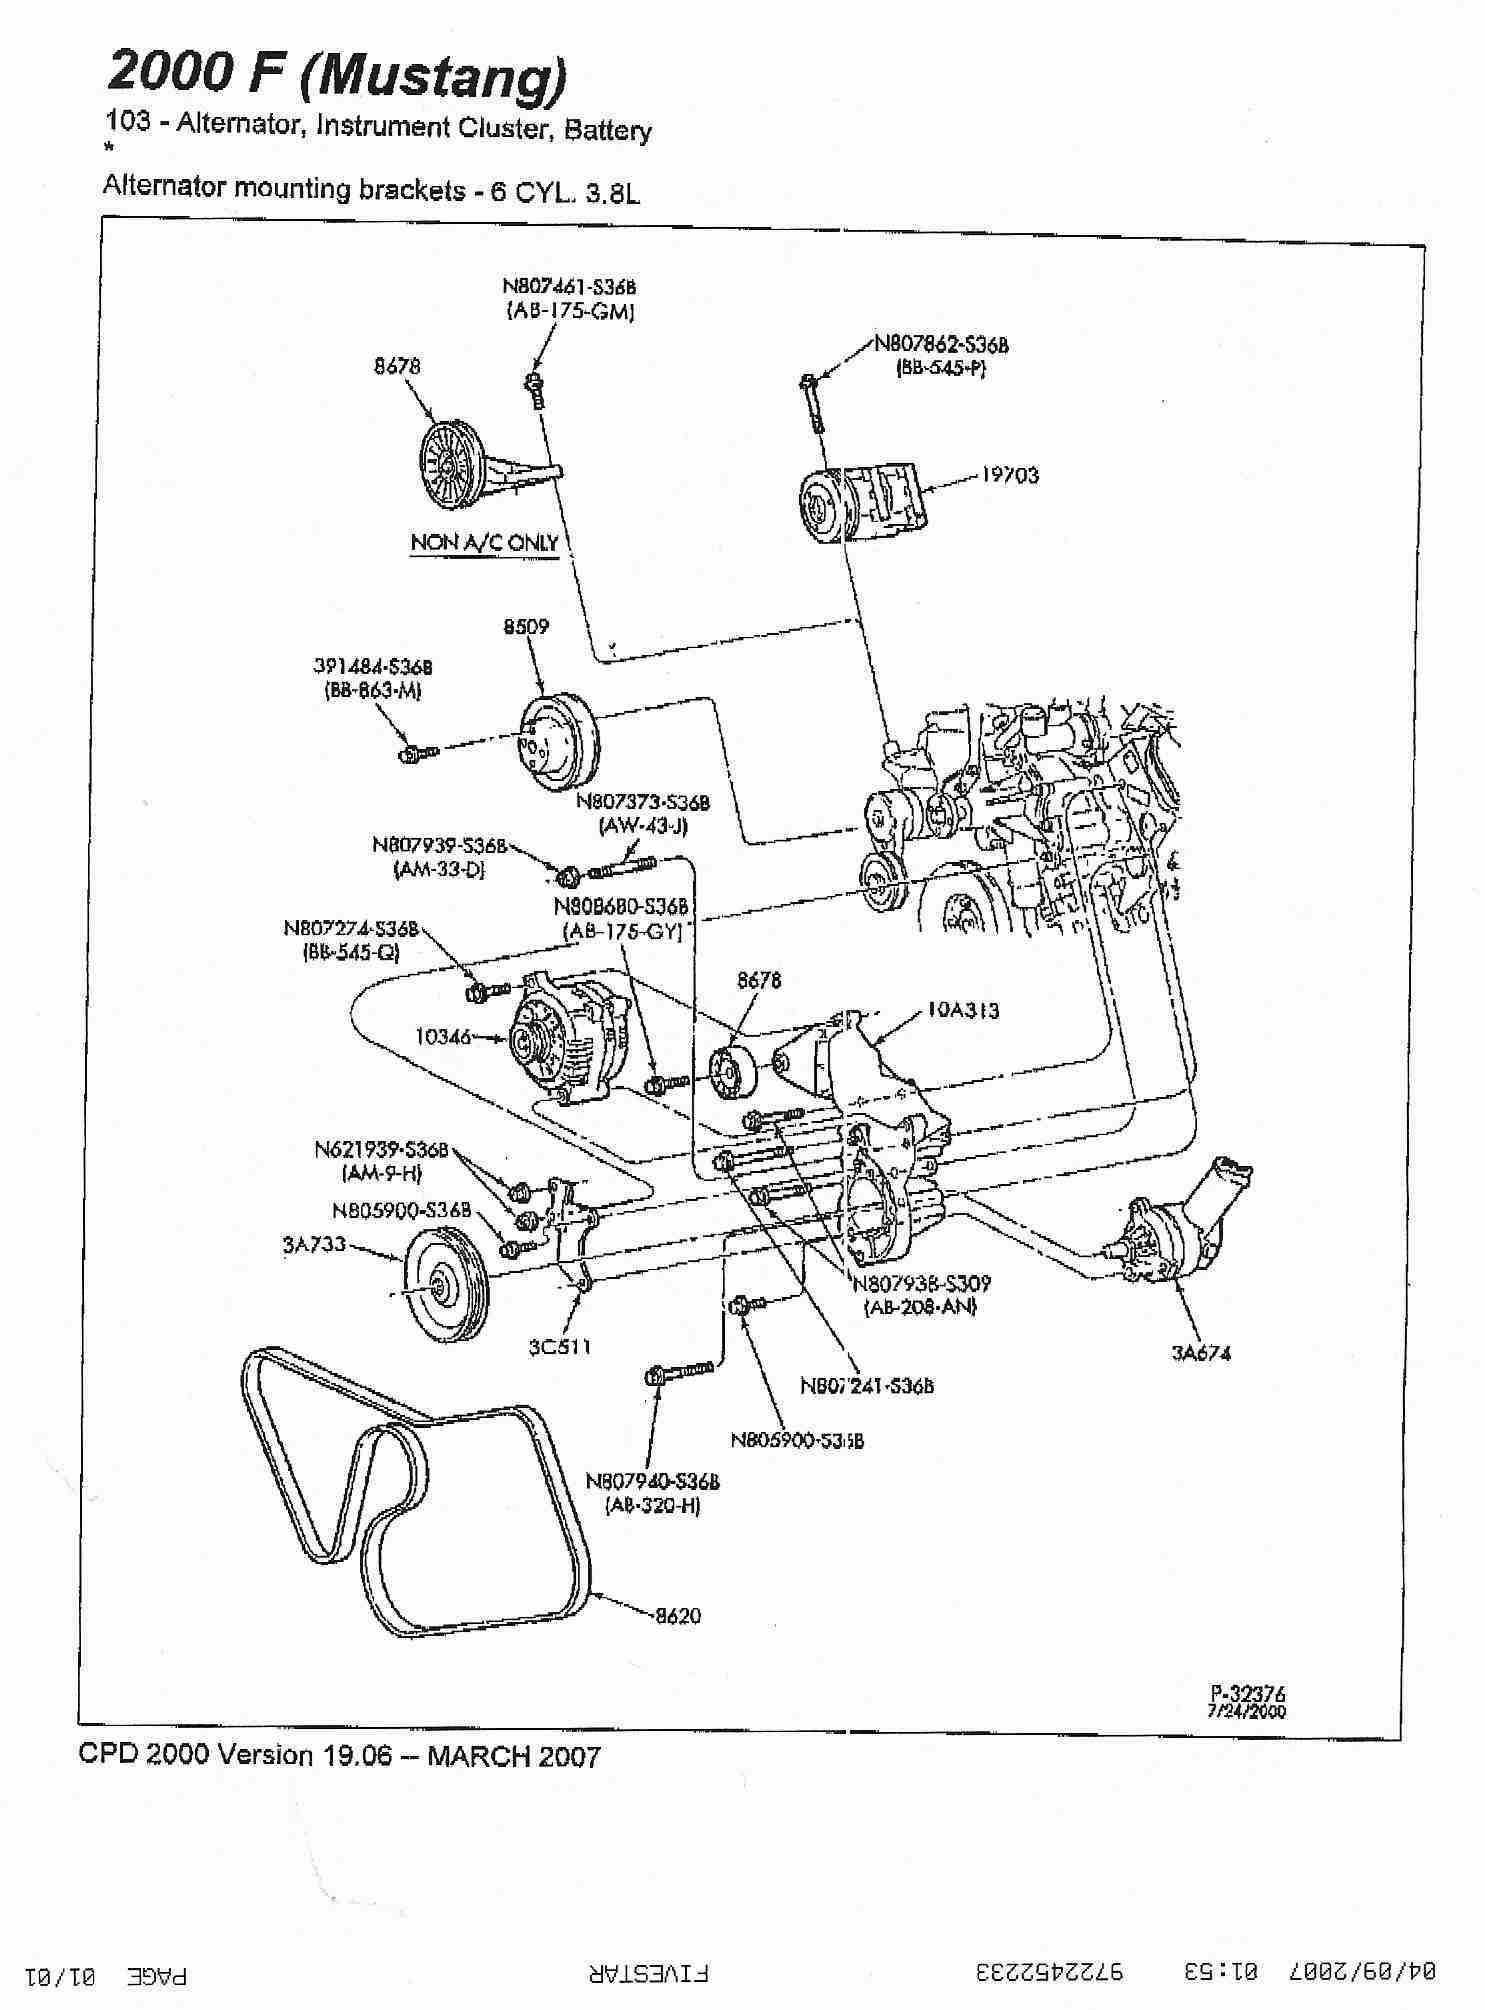 2002 Mustang 3 8l Engine Diagram Wiring Diagram Schema Solution Track Solution Track Atmosphereconcept It